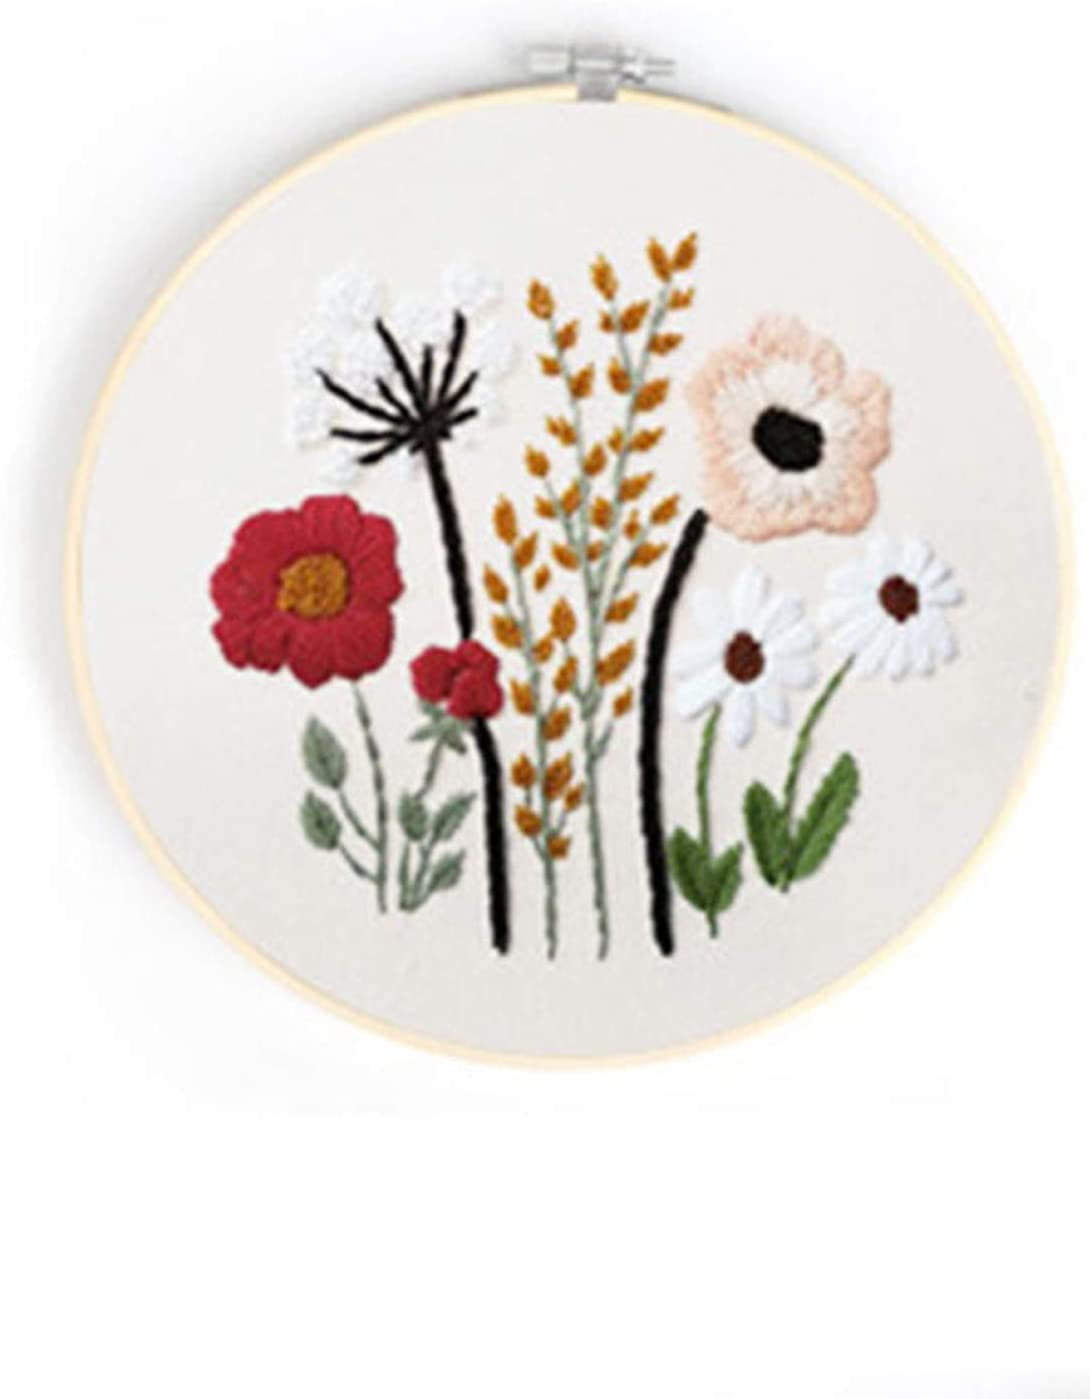 Embroidery Kit for Beginner Flowers Pattern Cross Stitch Adults Needlepoint Kit Funny DIY Embroidery Cross Stitch Kit Set for Beginners-Handmade Embroidery DIY Craft (S301)